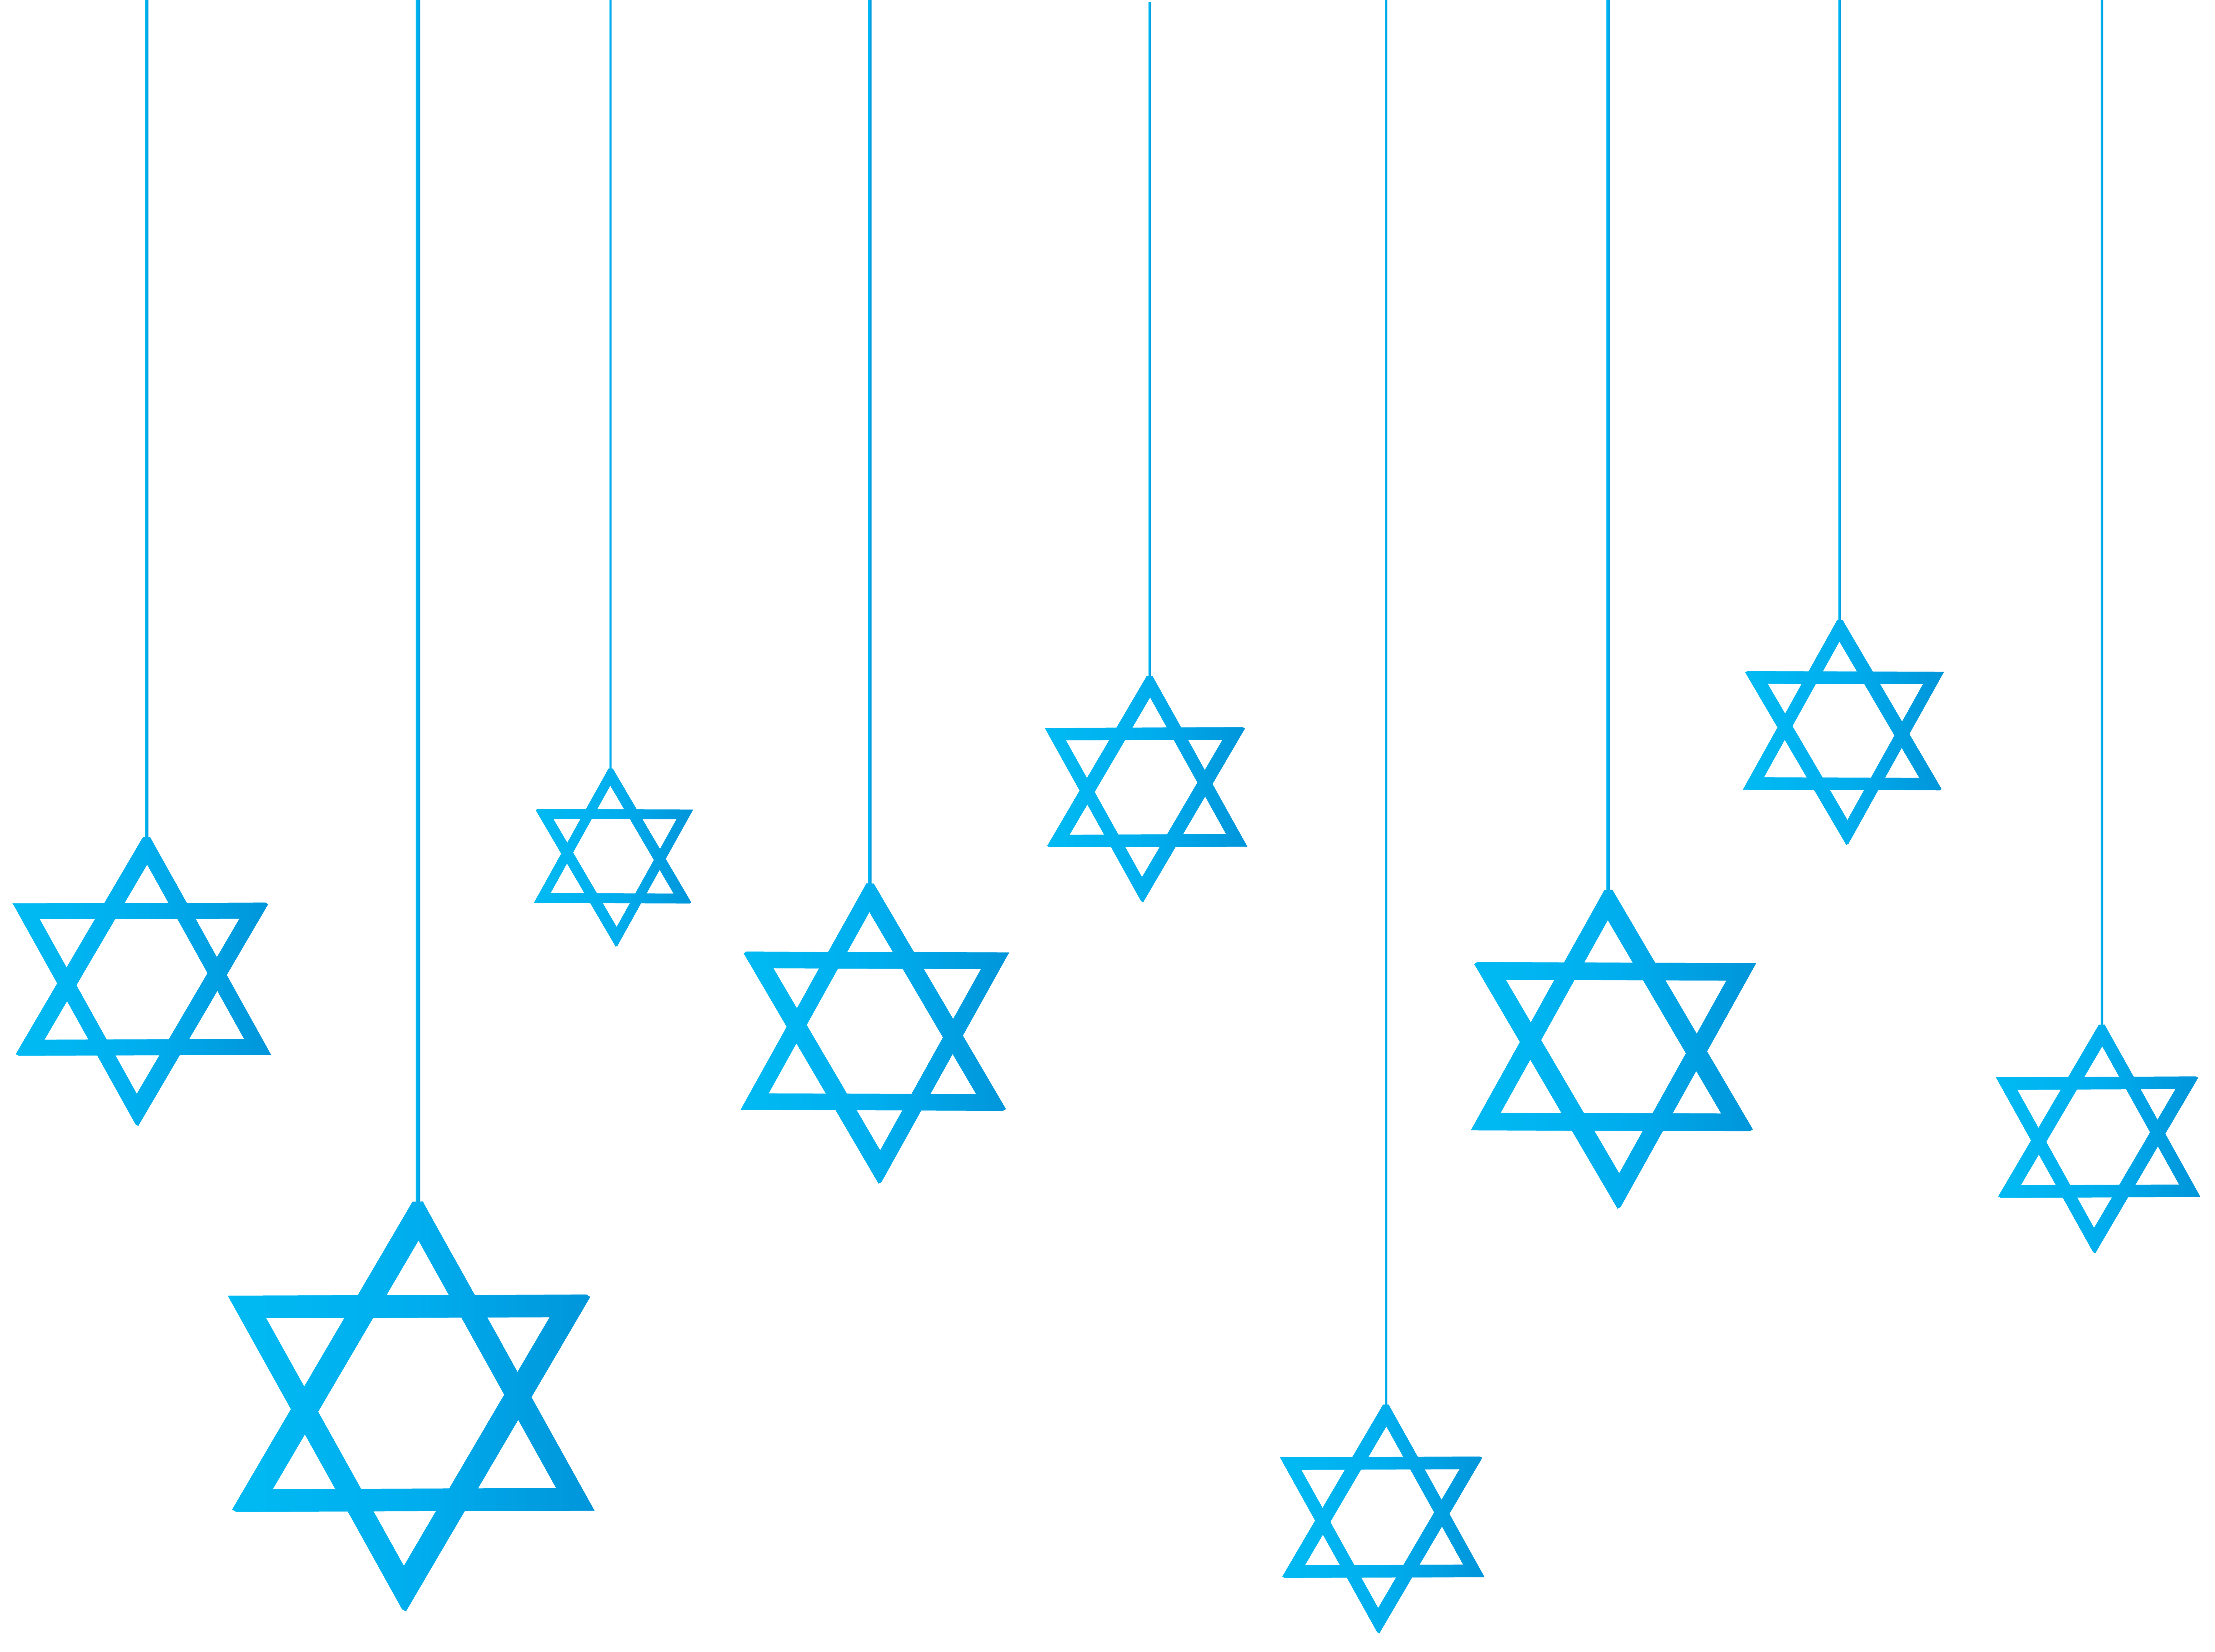 Number clipart decorative. Star of david hanging